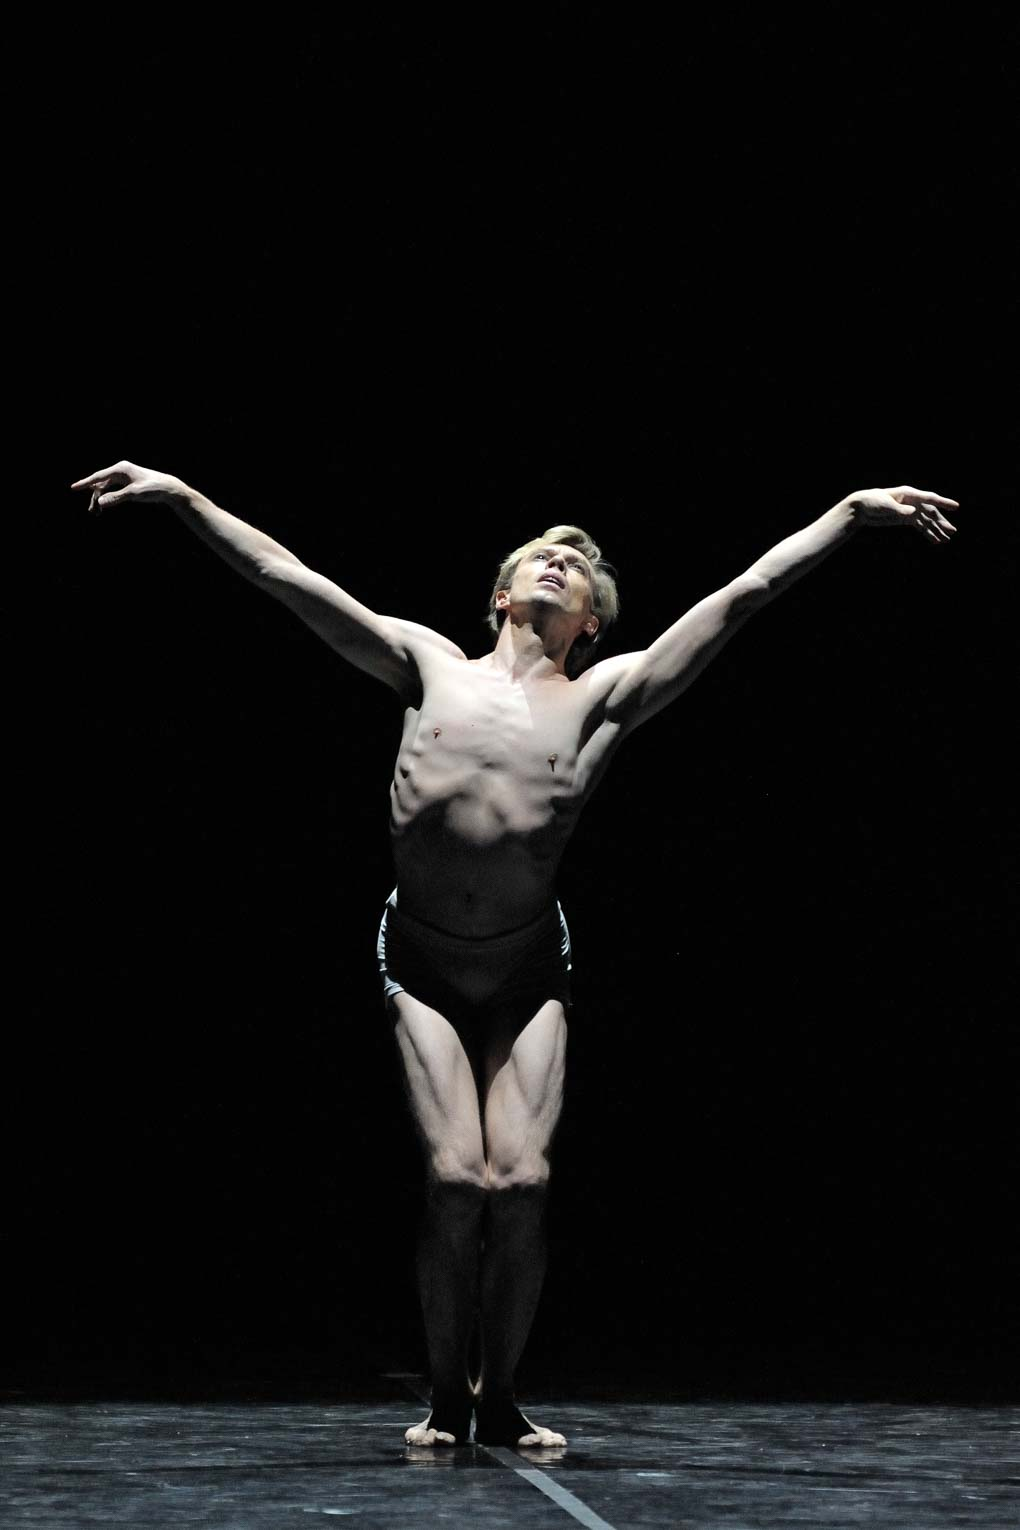 Principal dancer Vladimir Malakhov performing *The Dying Swan*, choreography Mauro de Candia (Berlin, 2010). Photo © Aris Fotografie